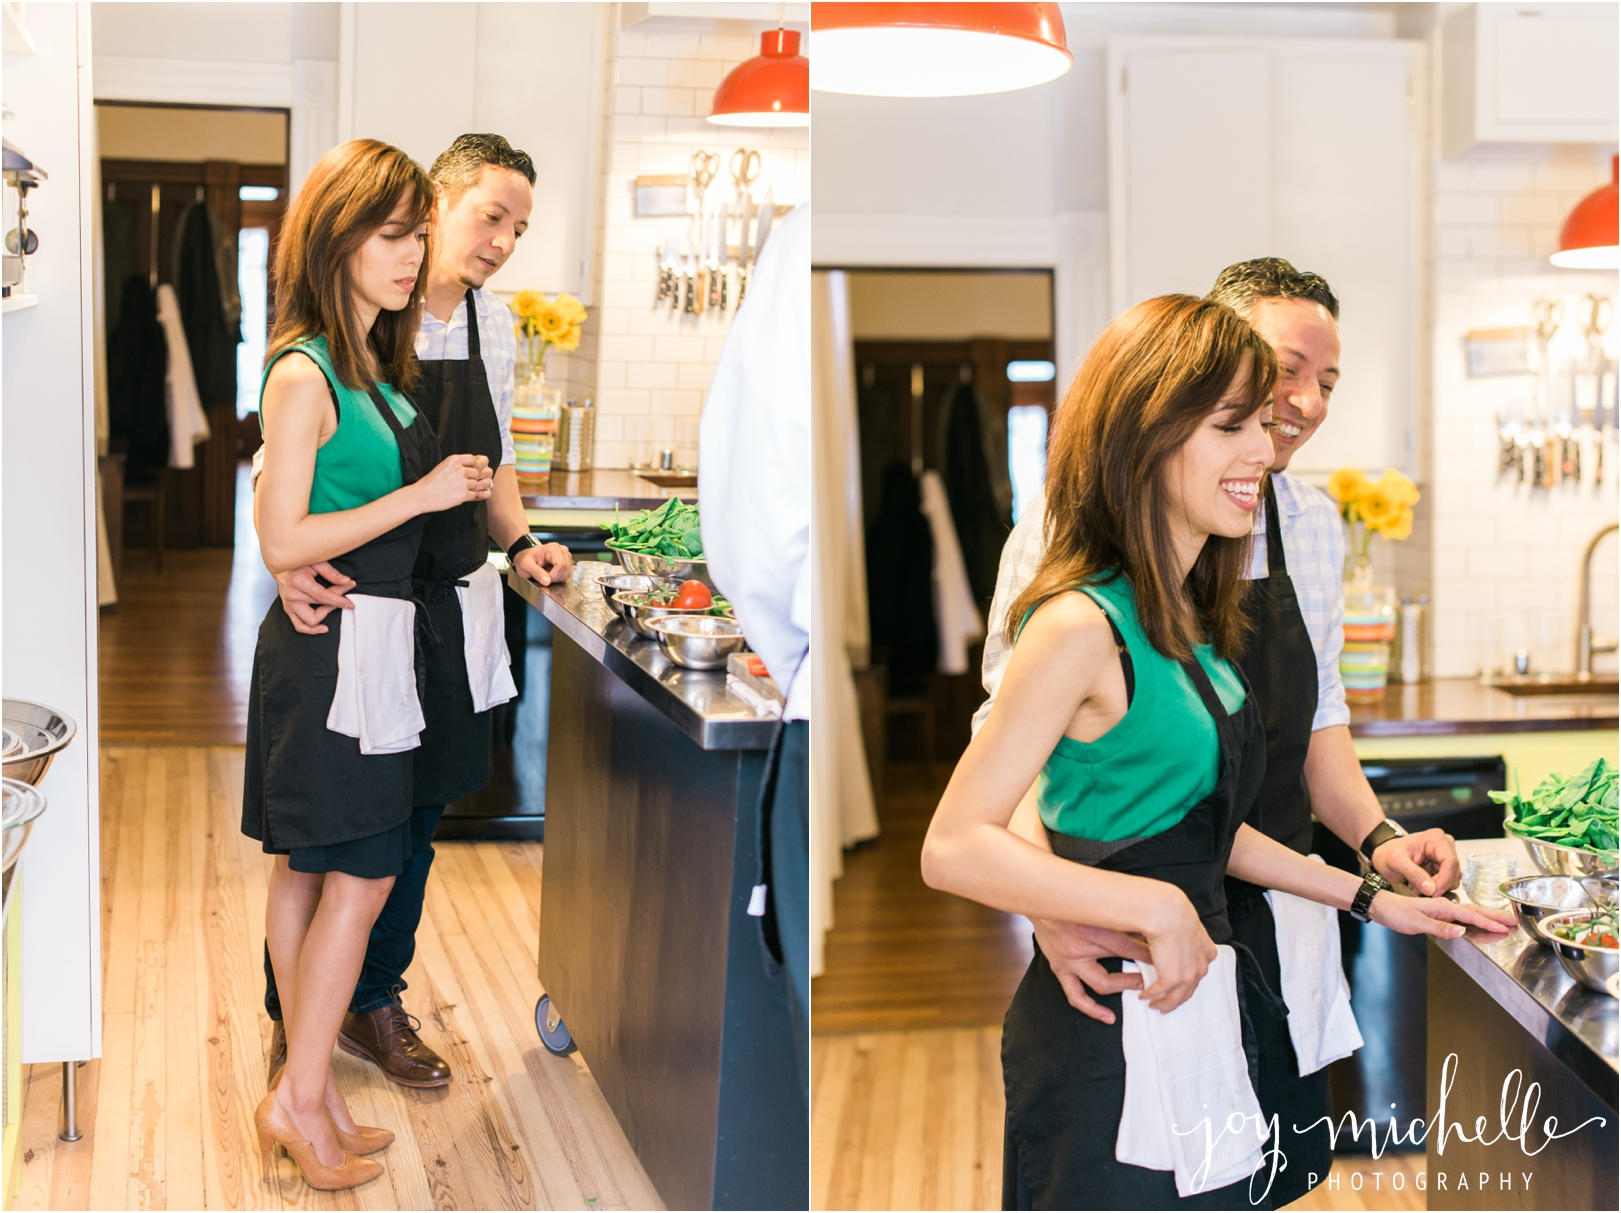 Cooking themed engagement session